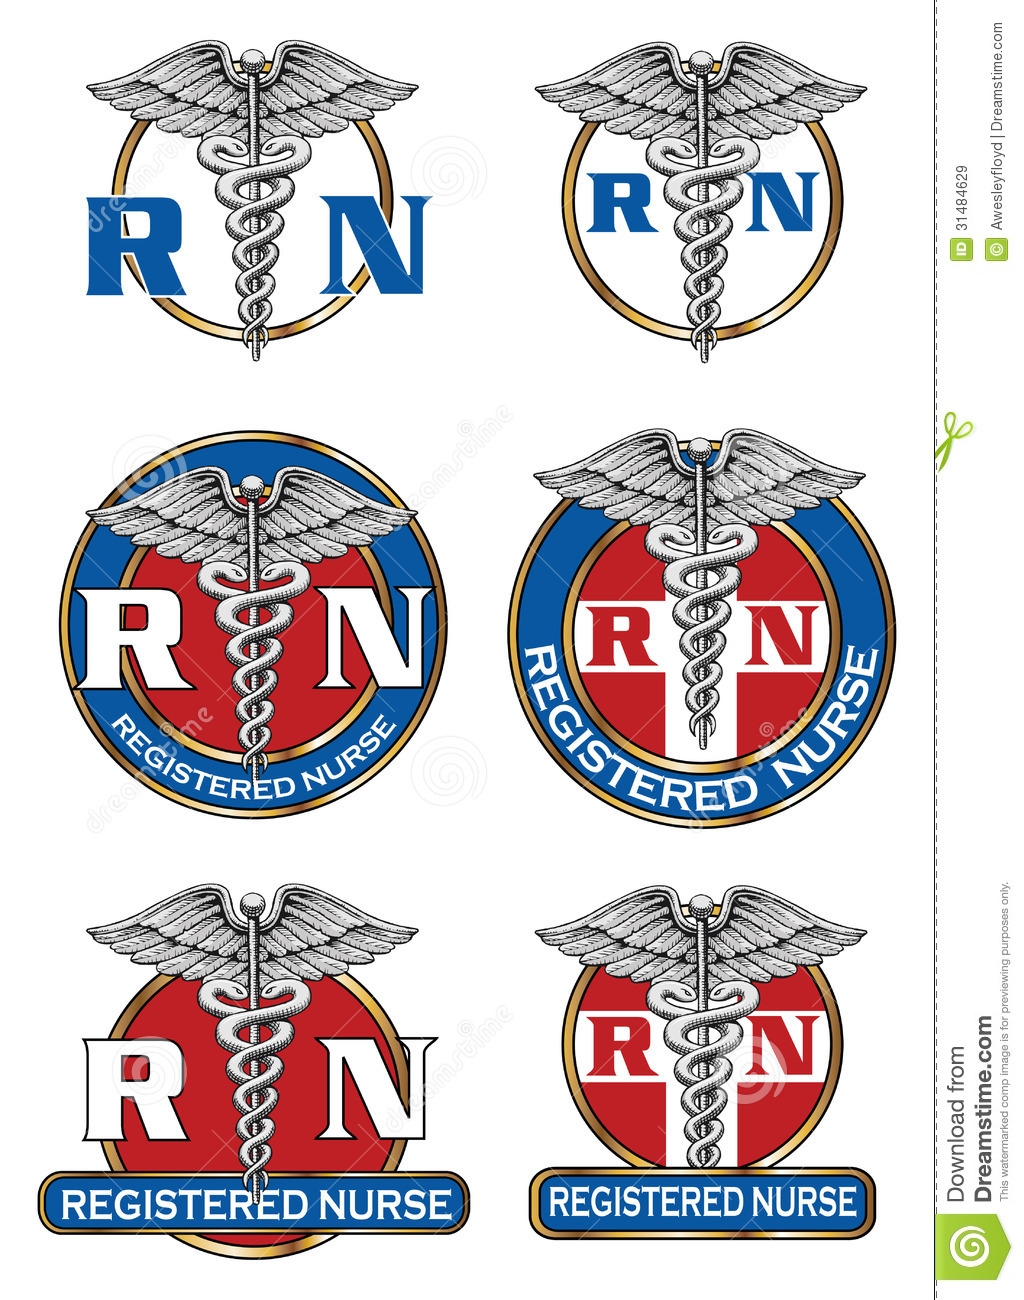 Registered Nurse Designs Royalty Free Stock Images Image